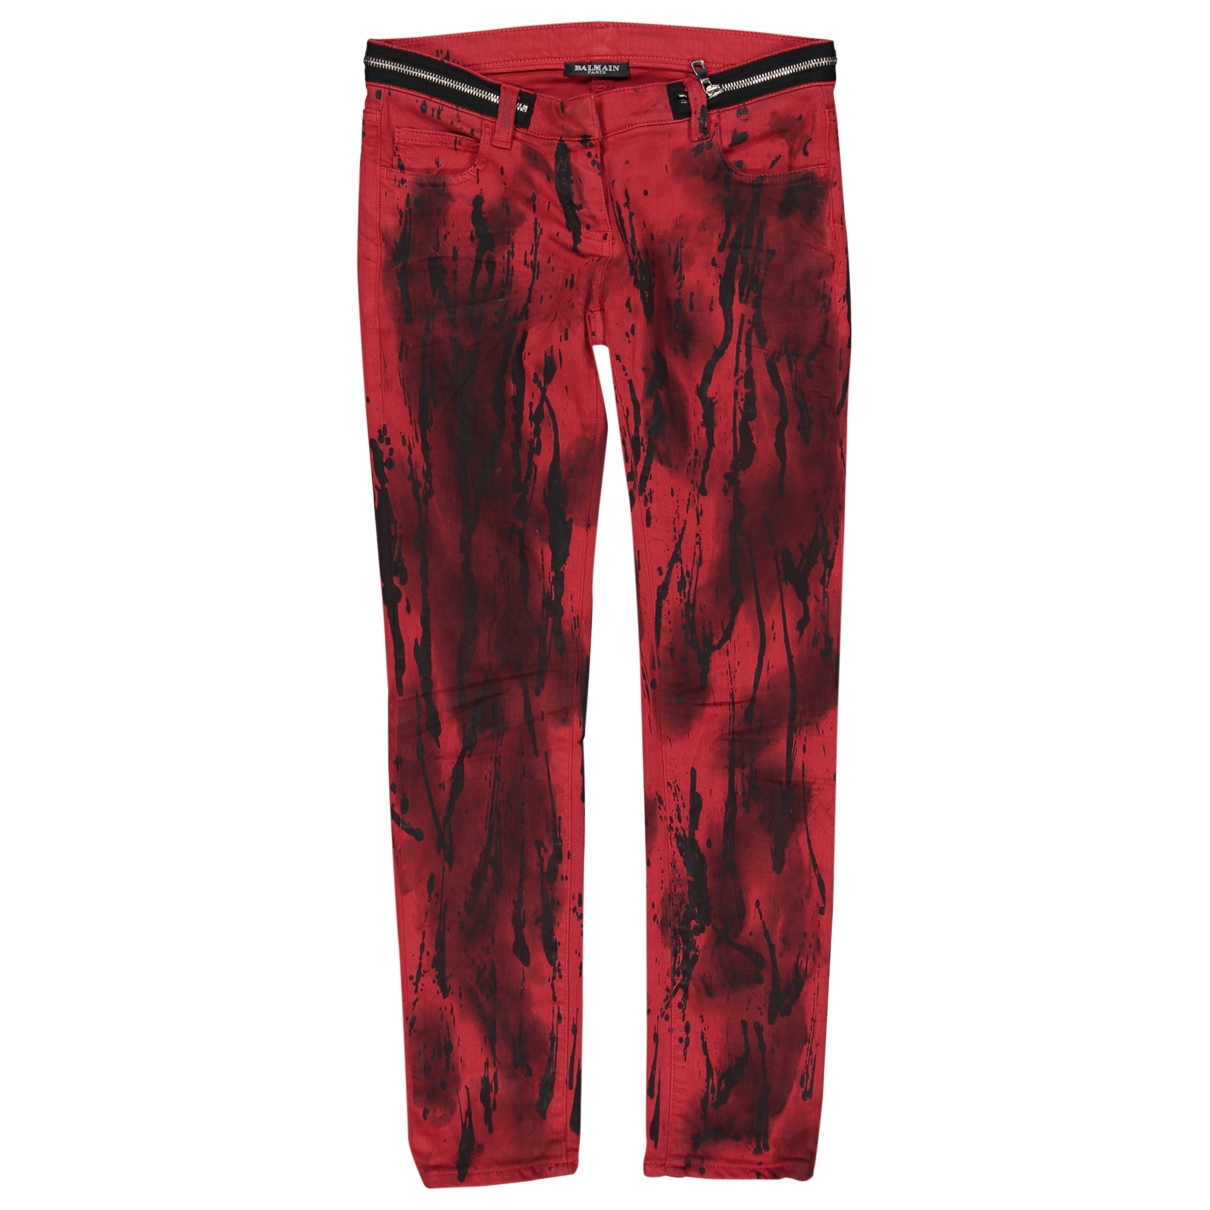 Balmain \N Red Cotton Jeans for Women 34 FR